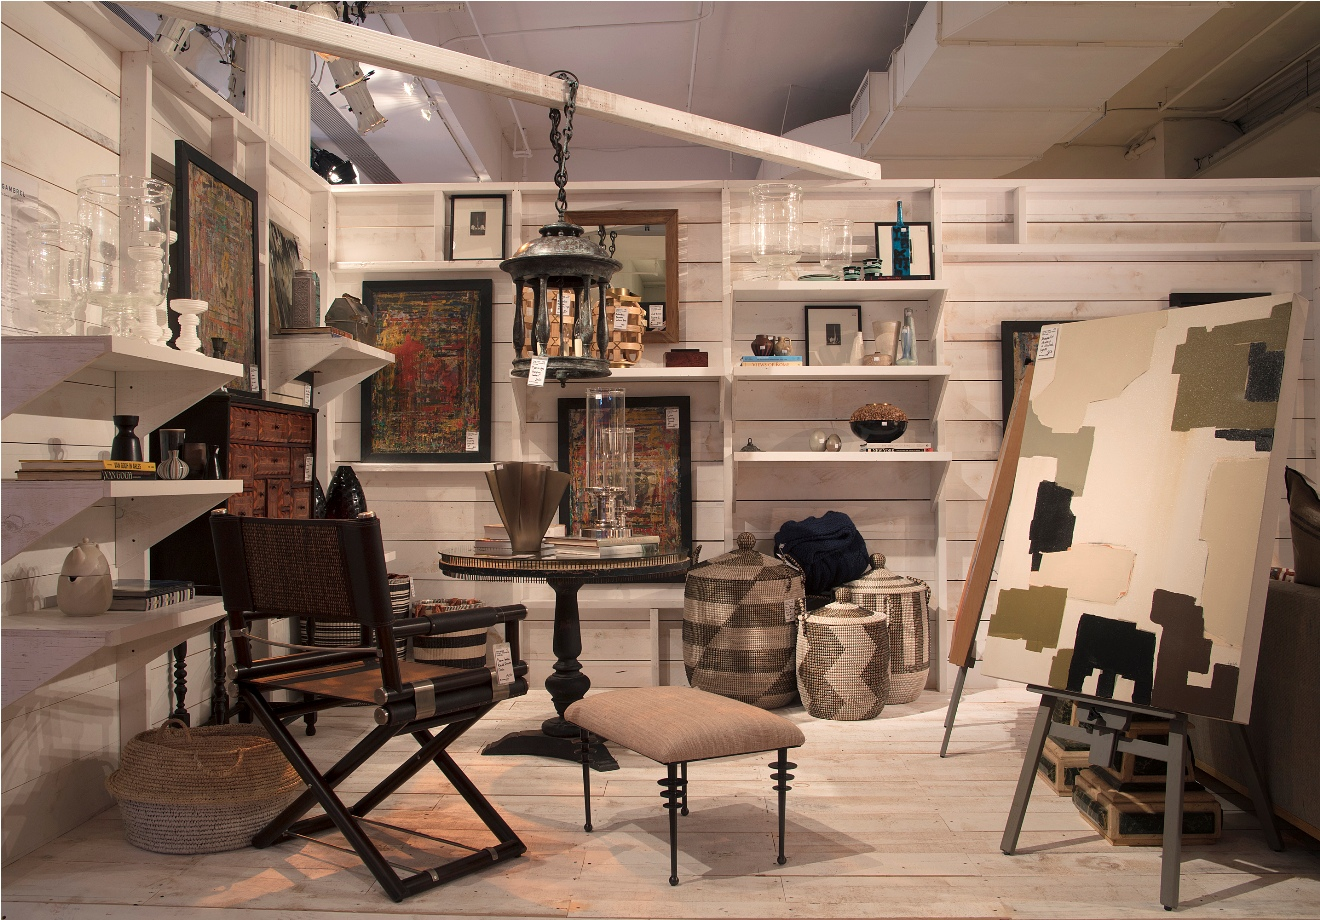 Design on a dime nyc stylish spaces and shopping for a cause for Interior design directory nyc